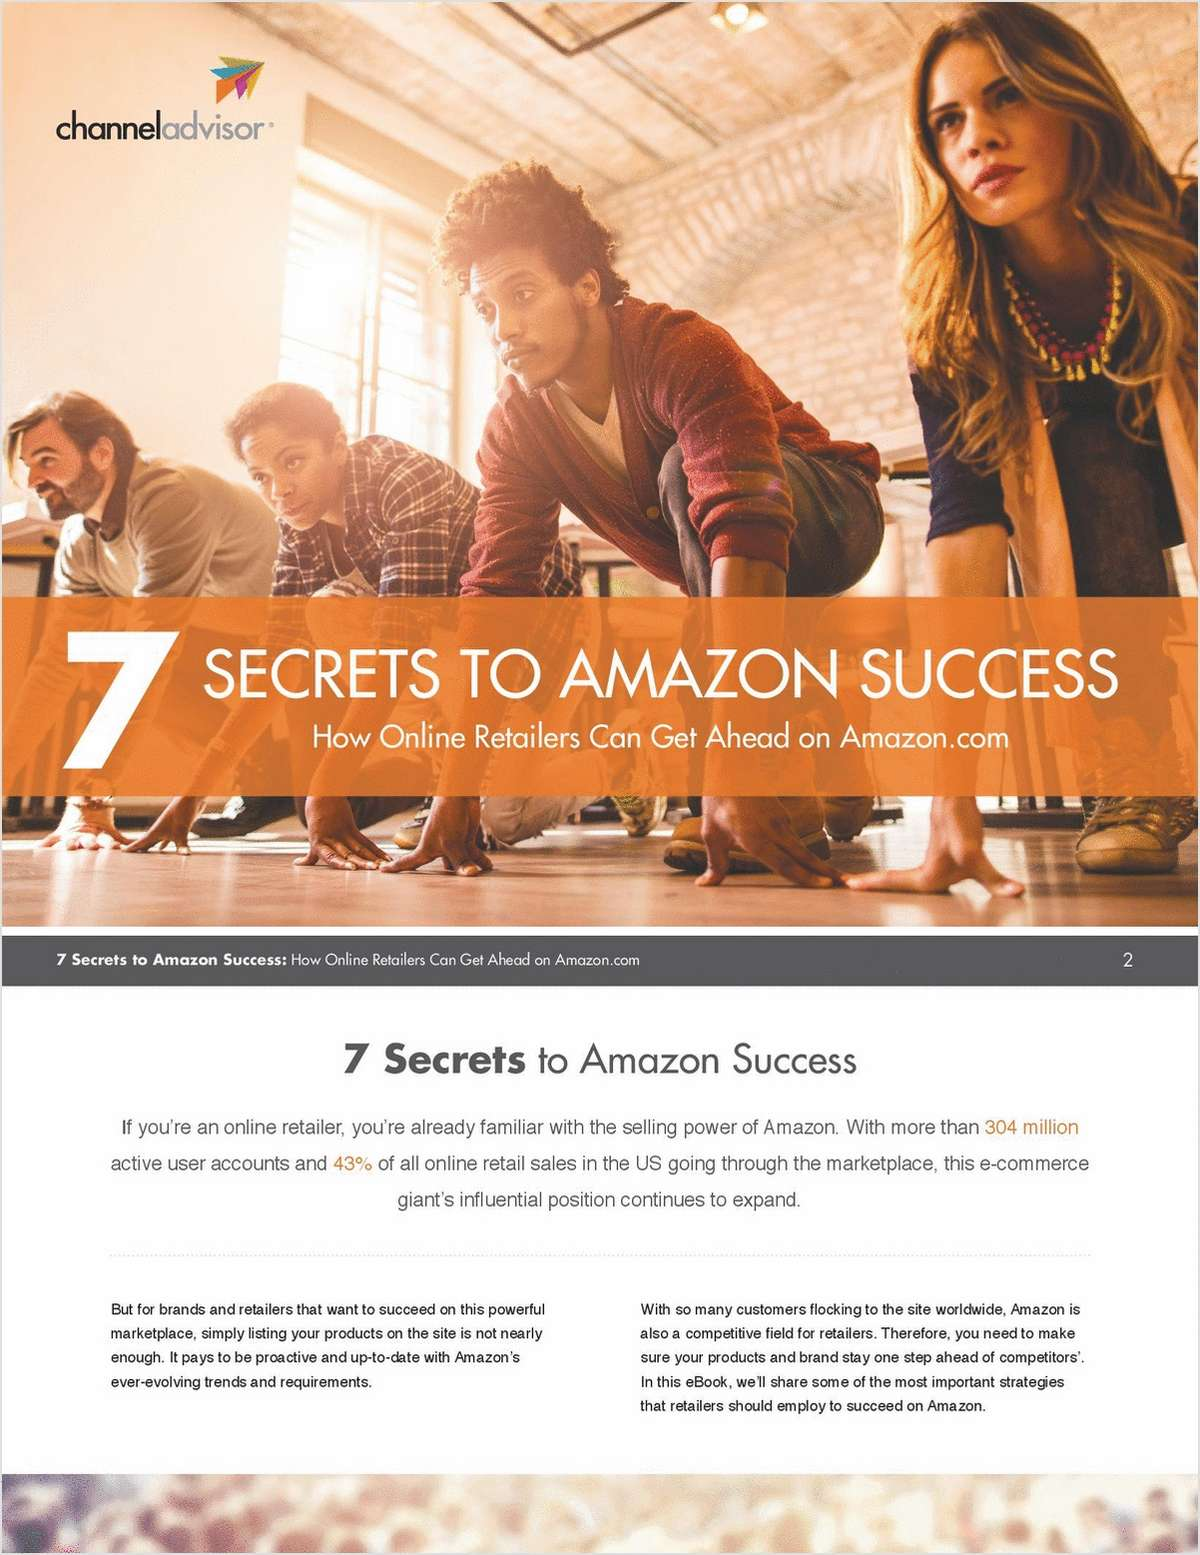 7 Secrets to Amazon Success